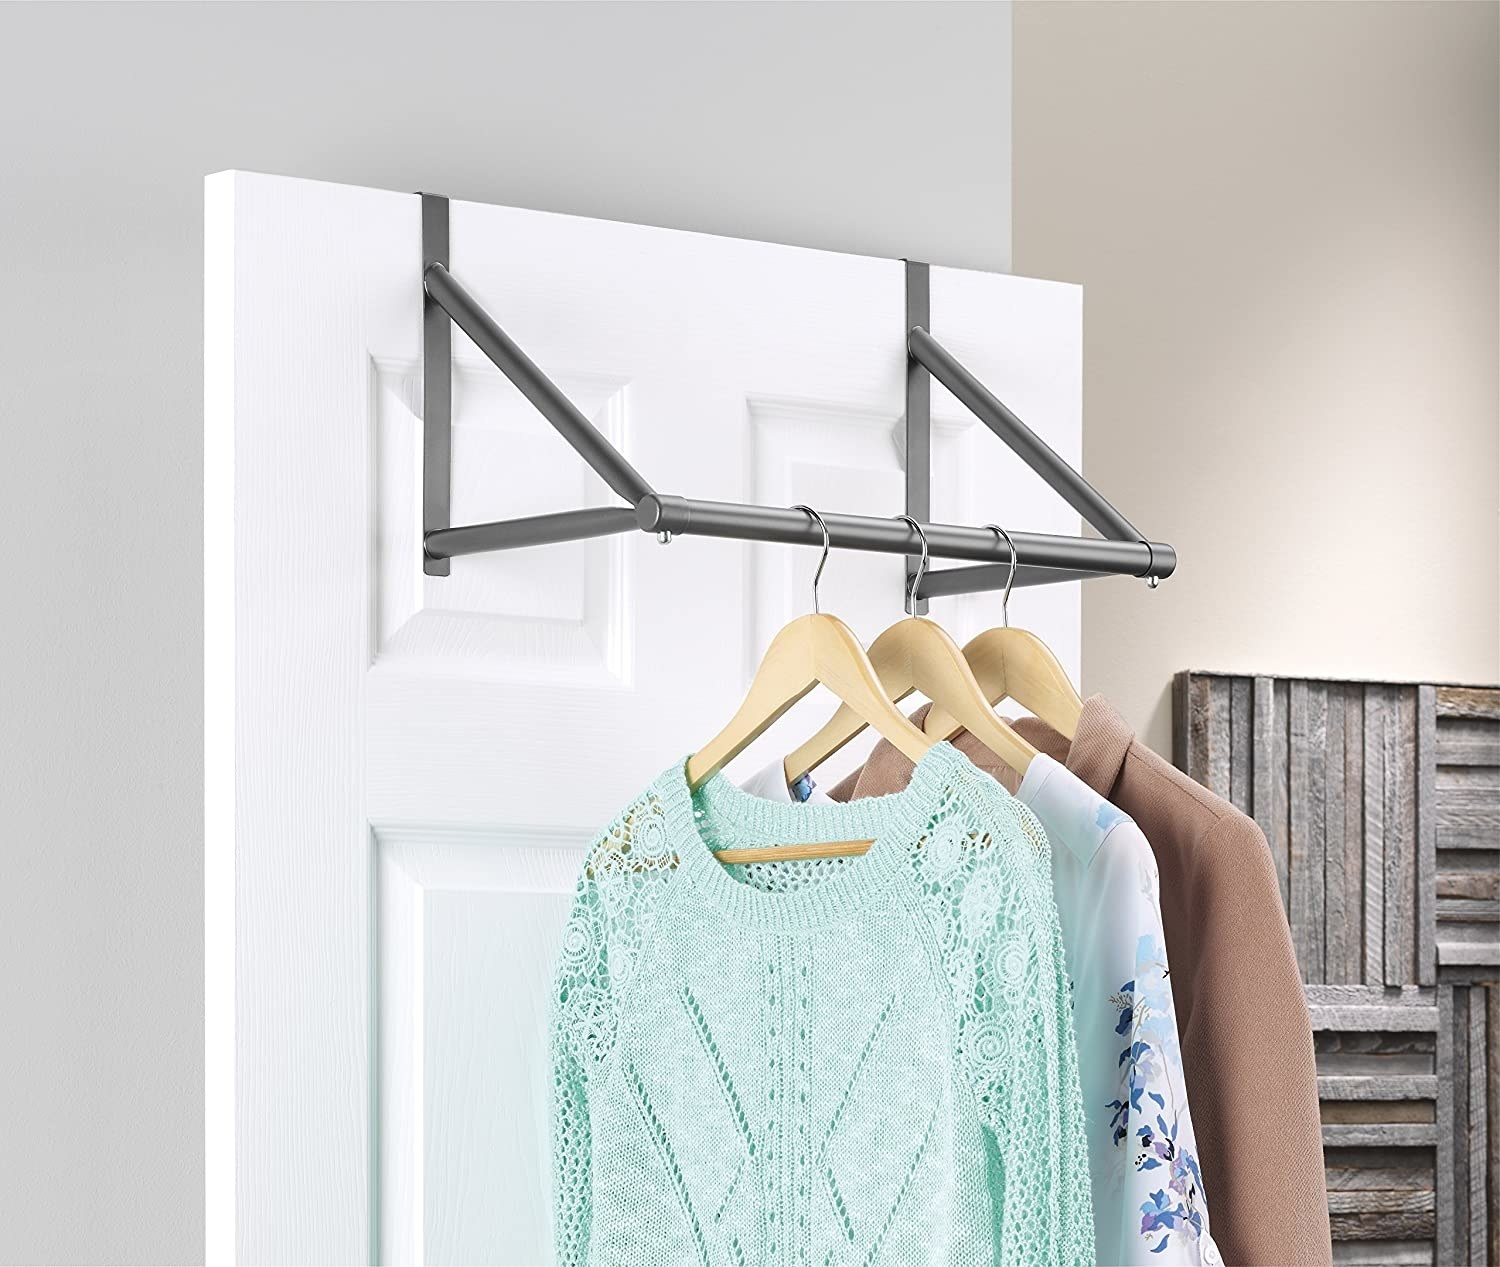 over the door clothing rail on the back of a closet door